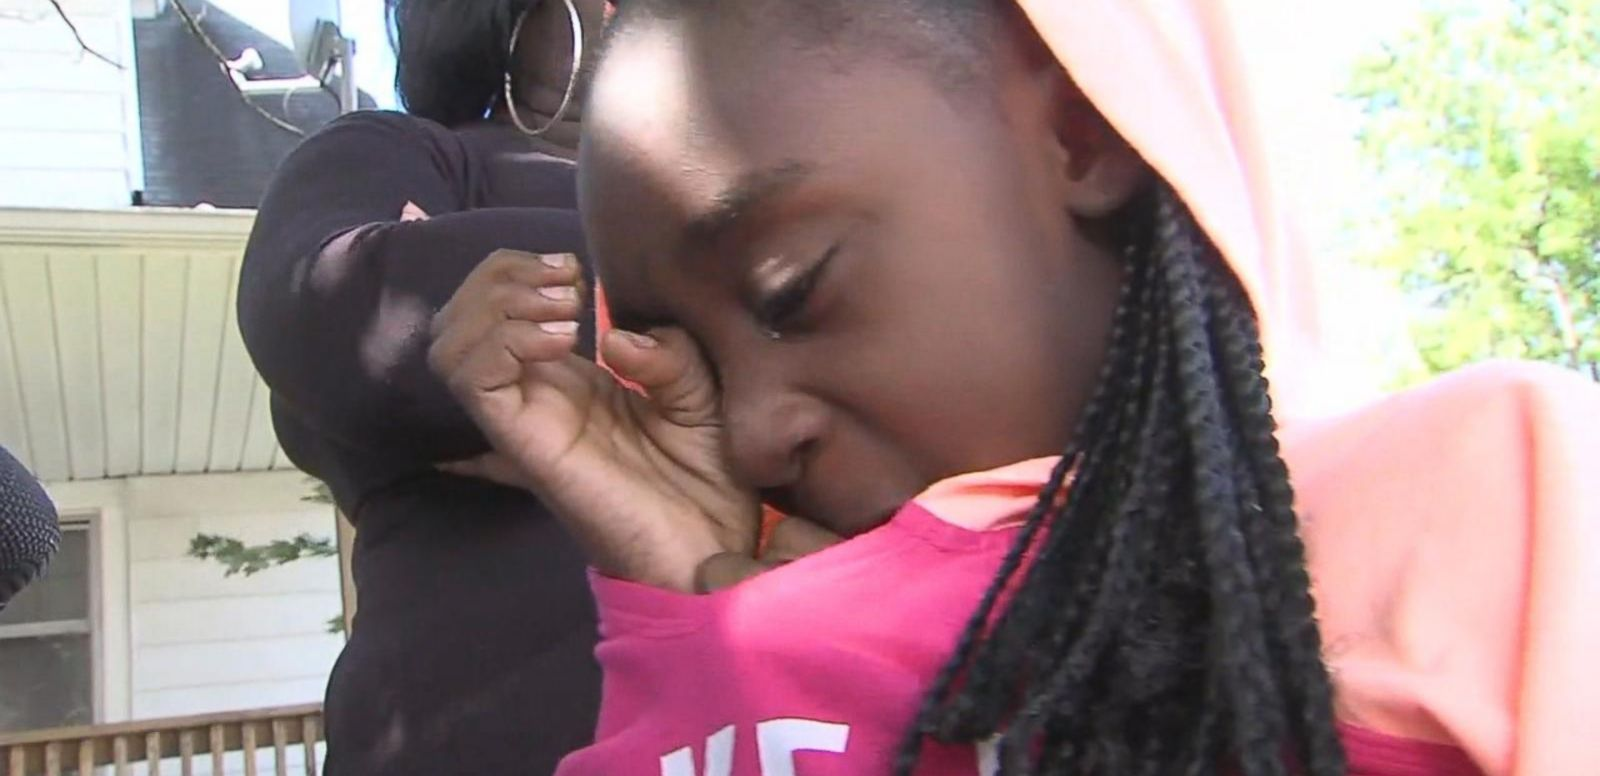 VIDEO: Family of Slain Five Month Old Speaks Out